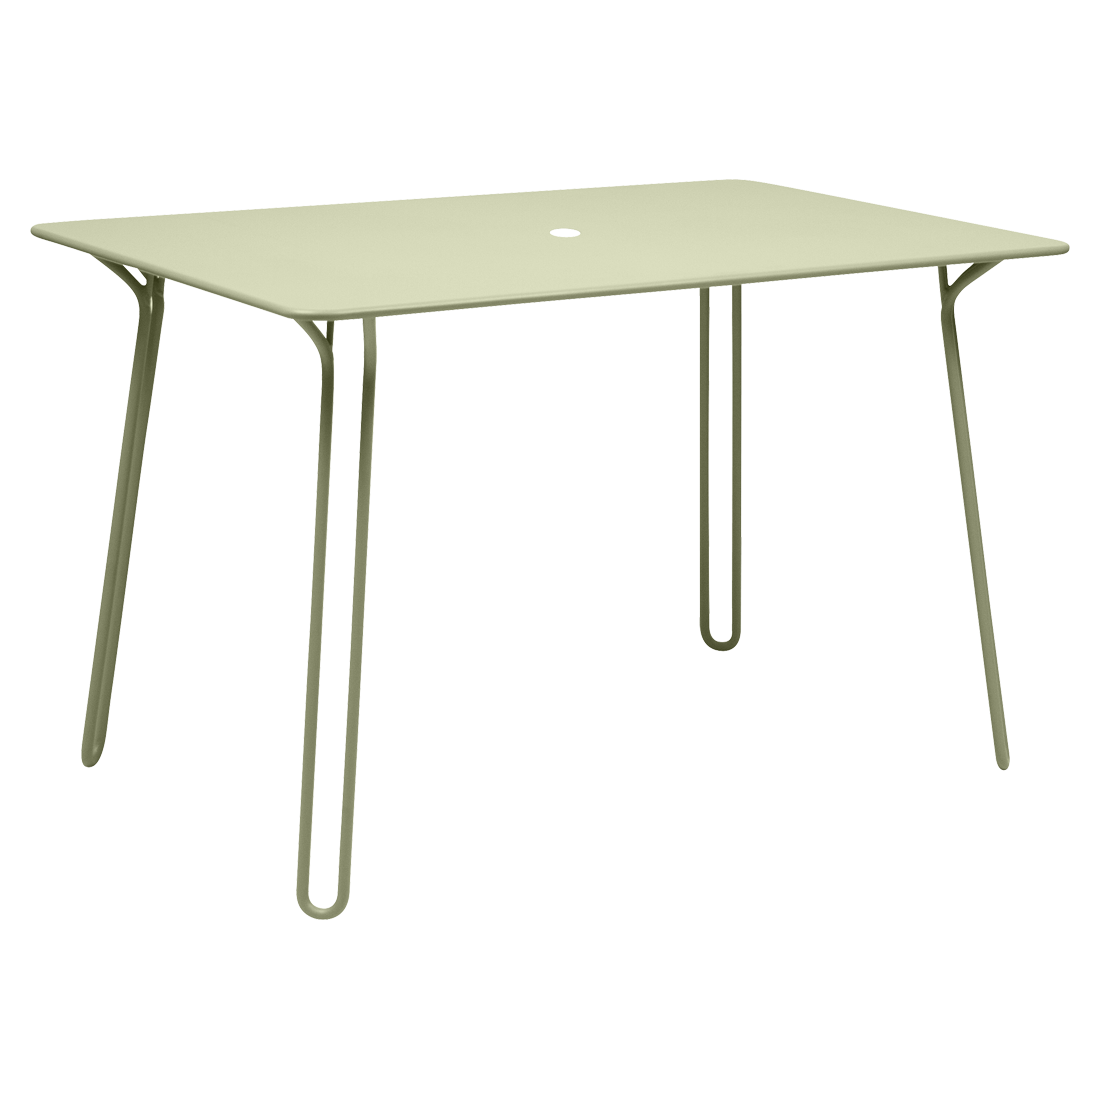 Table surprising table de jardin en m tal mobilier de jardin for Fermob table de jardin